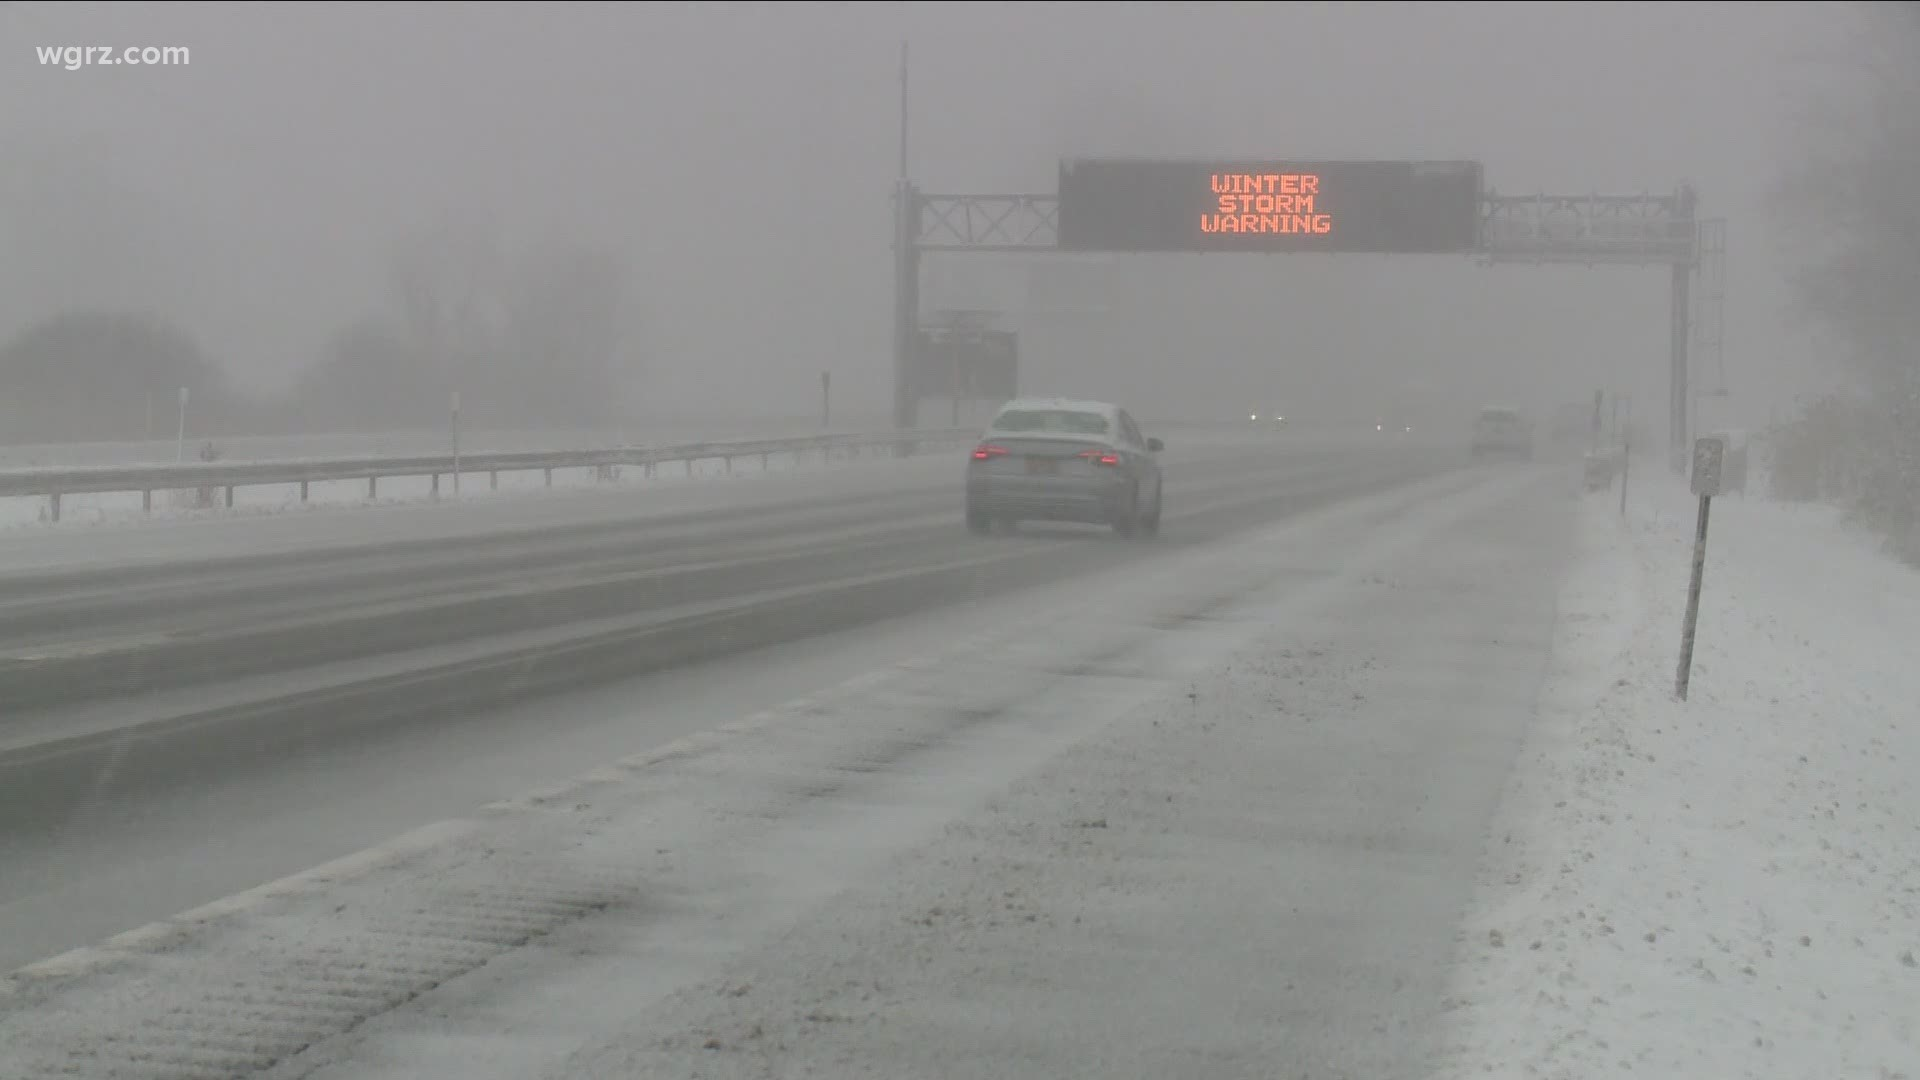 Lessening Snowfall Prompts Erie County To Lift Travel Advisory Wgrz Com